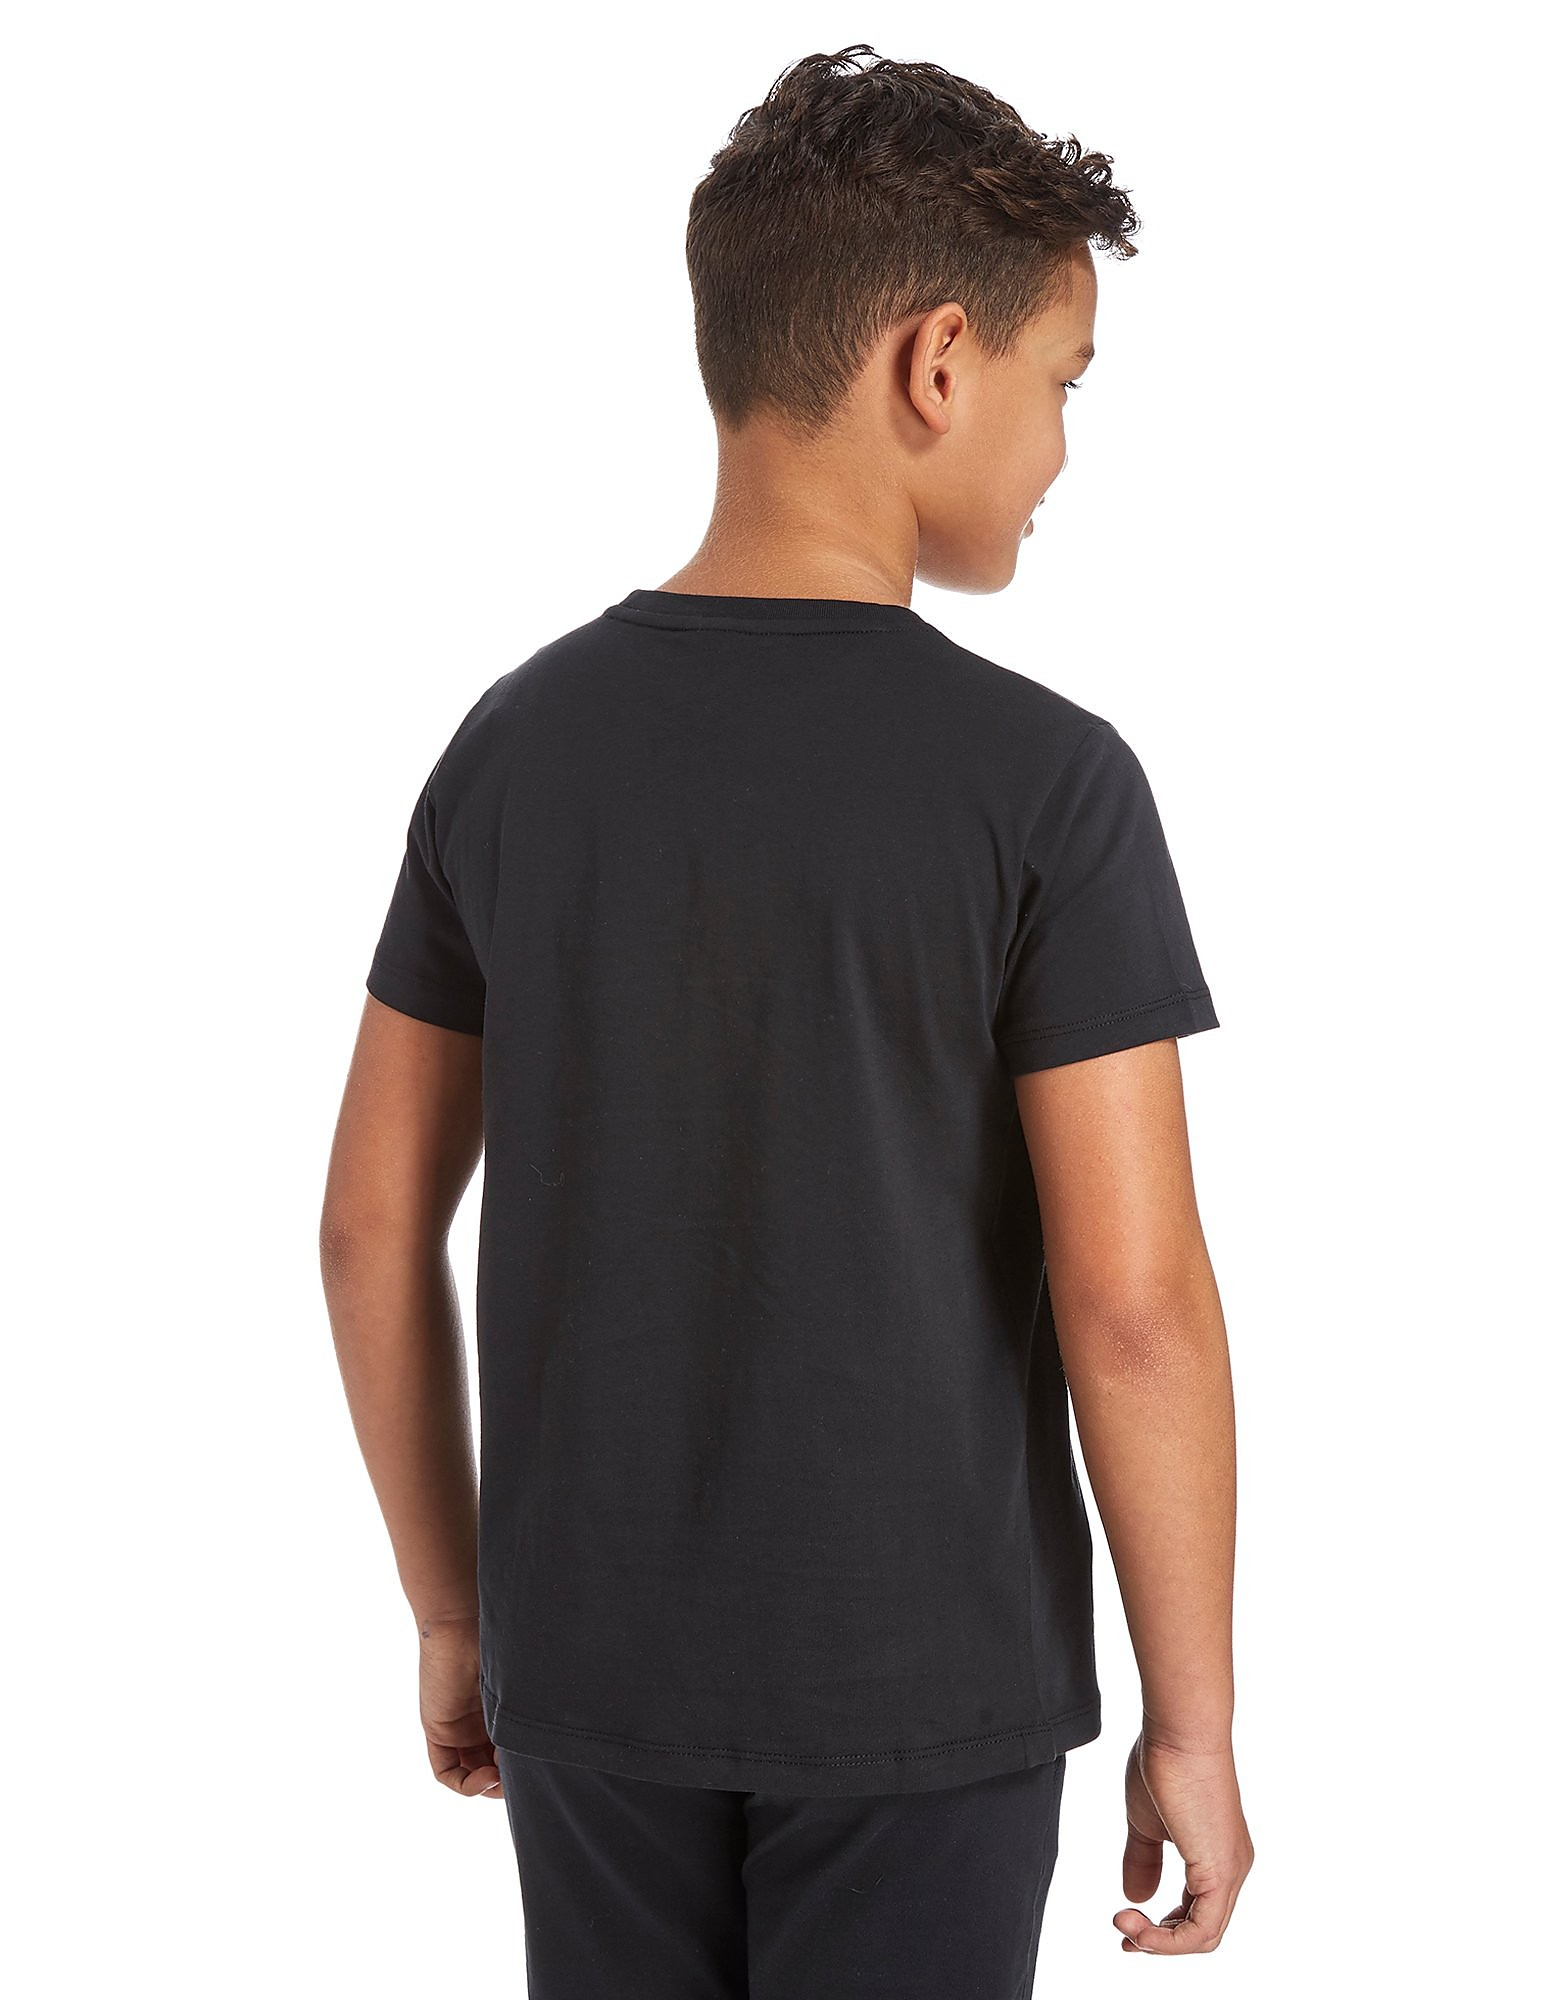 Emporio Armani EA7 Core Short Sleeve T-Shirt Junior